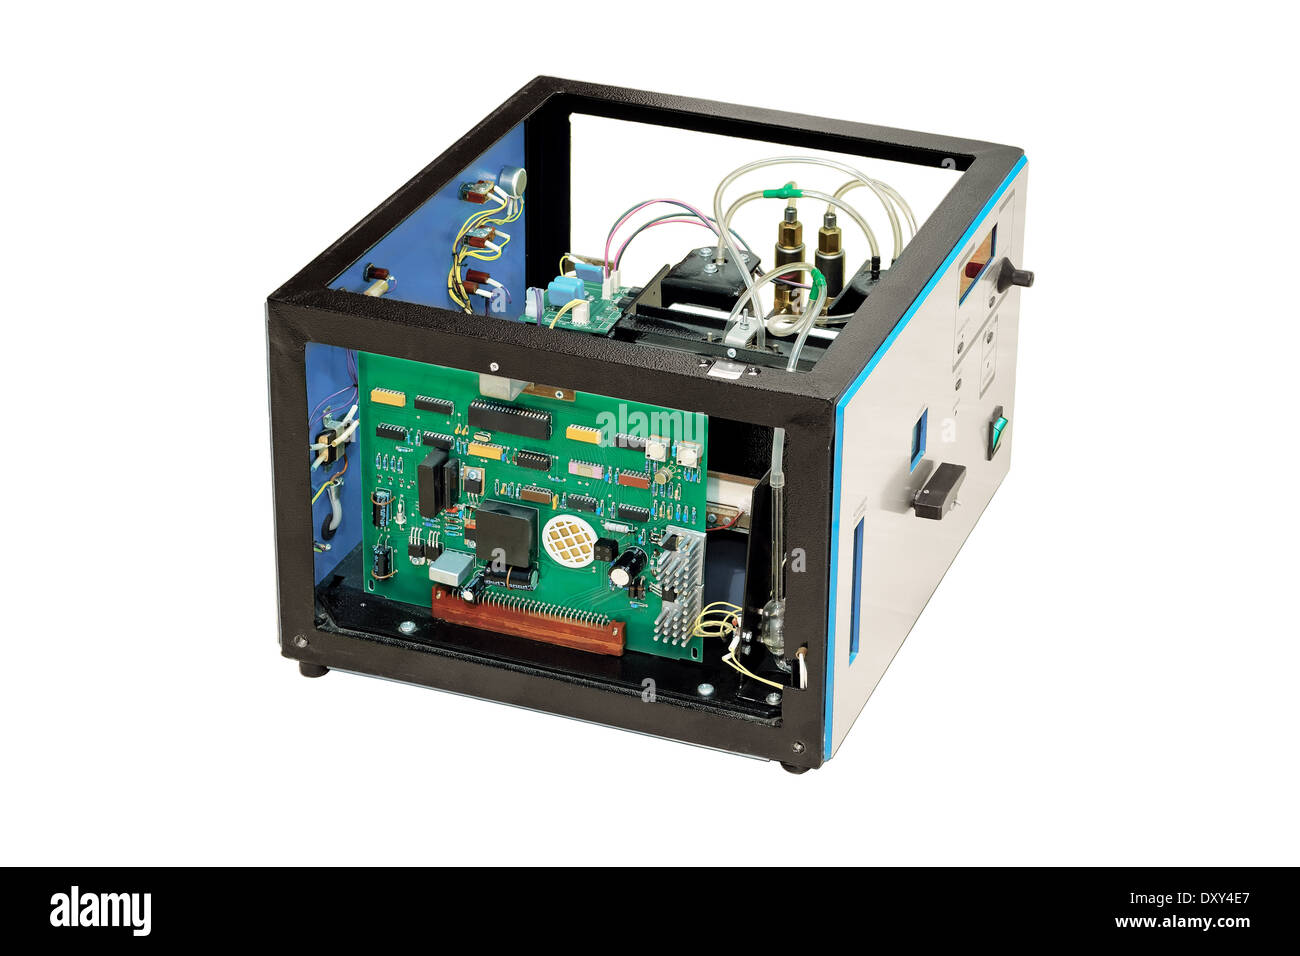 apparatus, appliance, board, circuitry, complexity, connection, control, device, disassemble, disassembled, electric, electronic - Stock Image